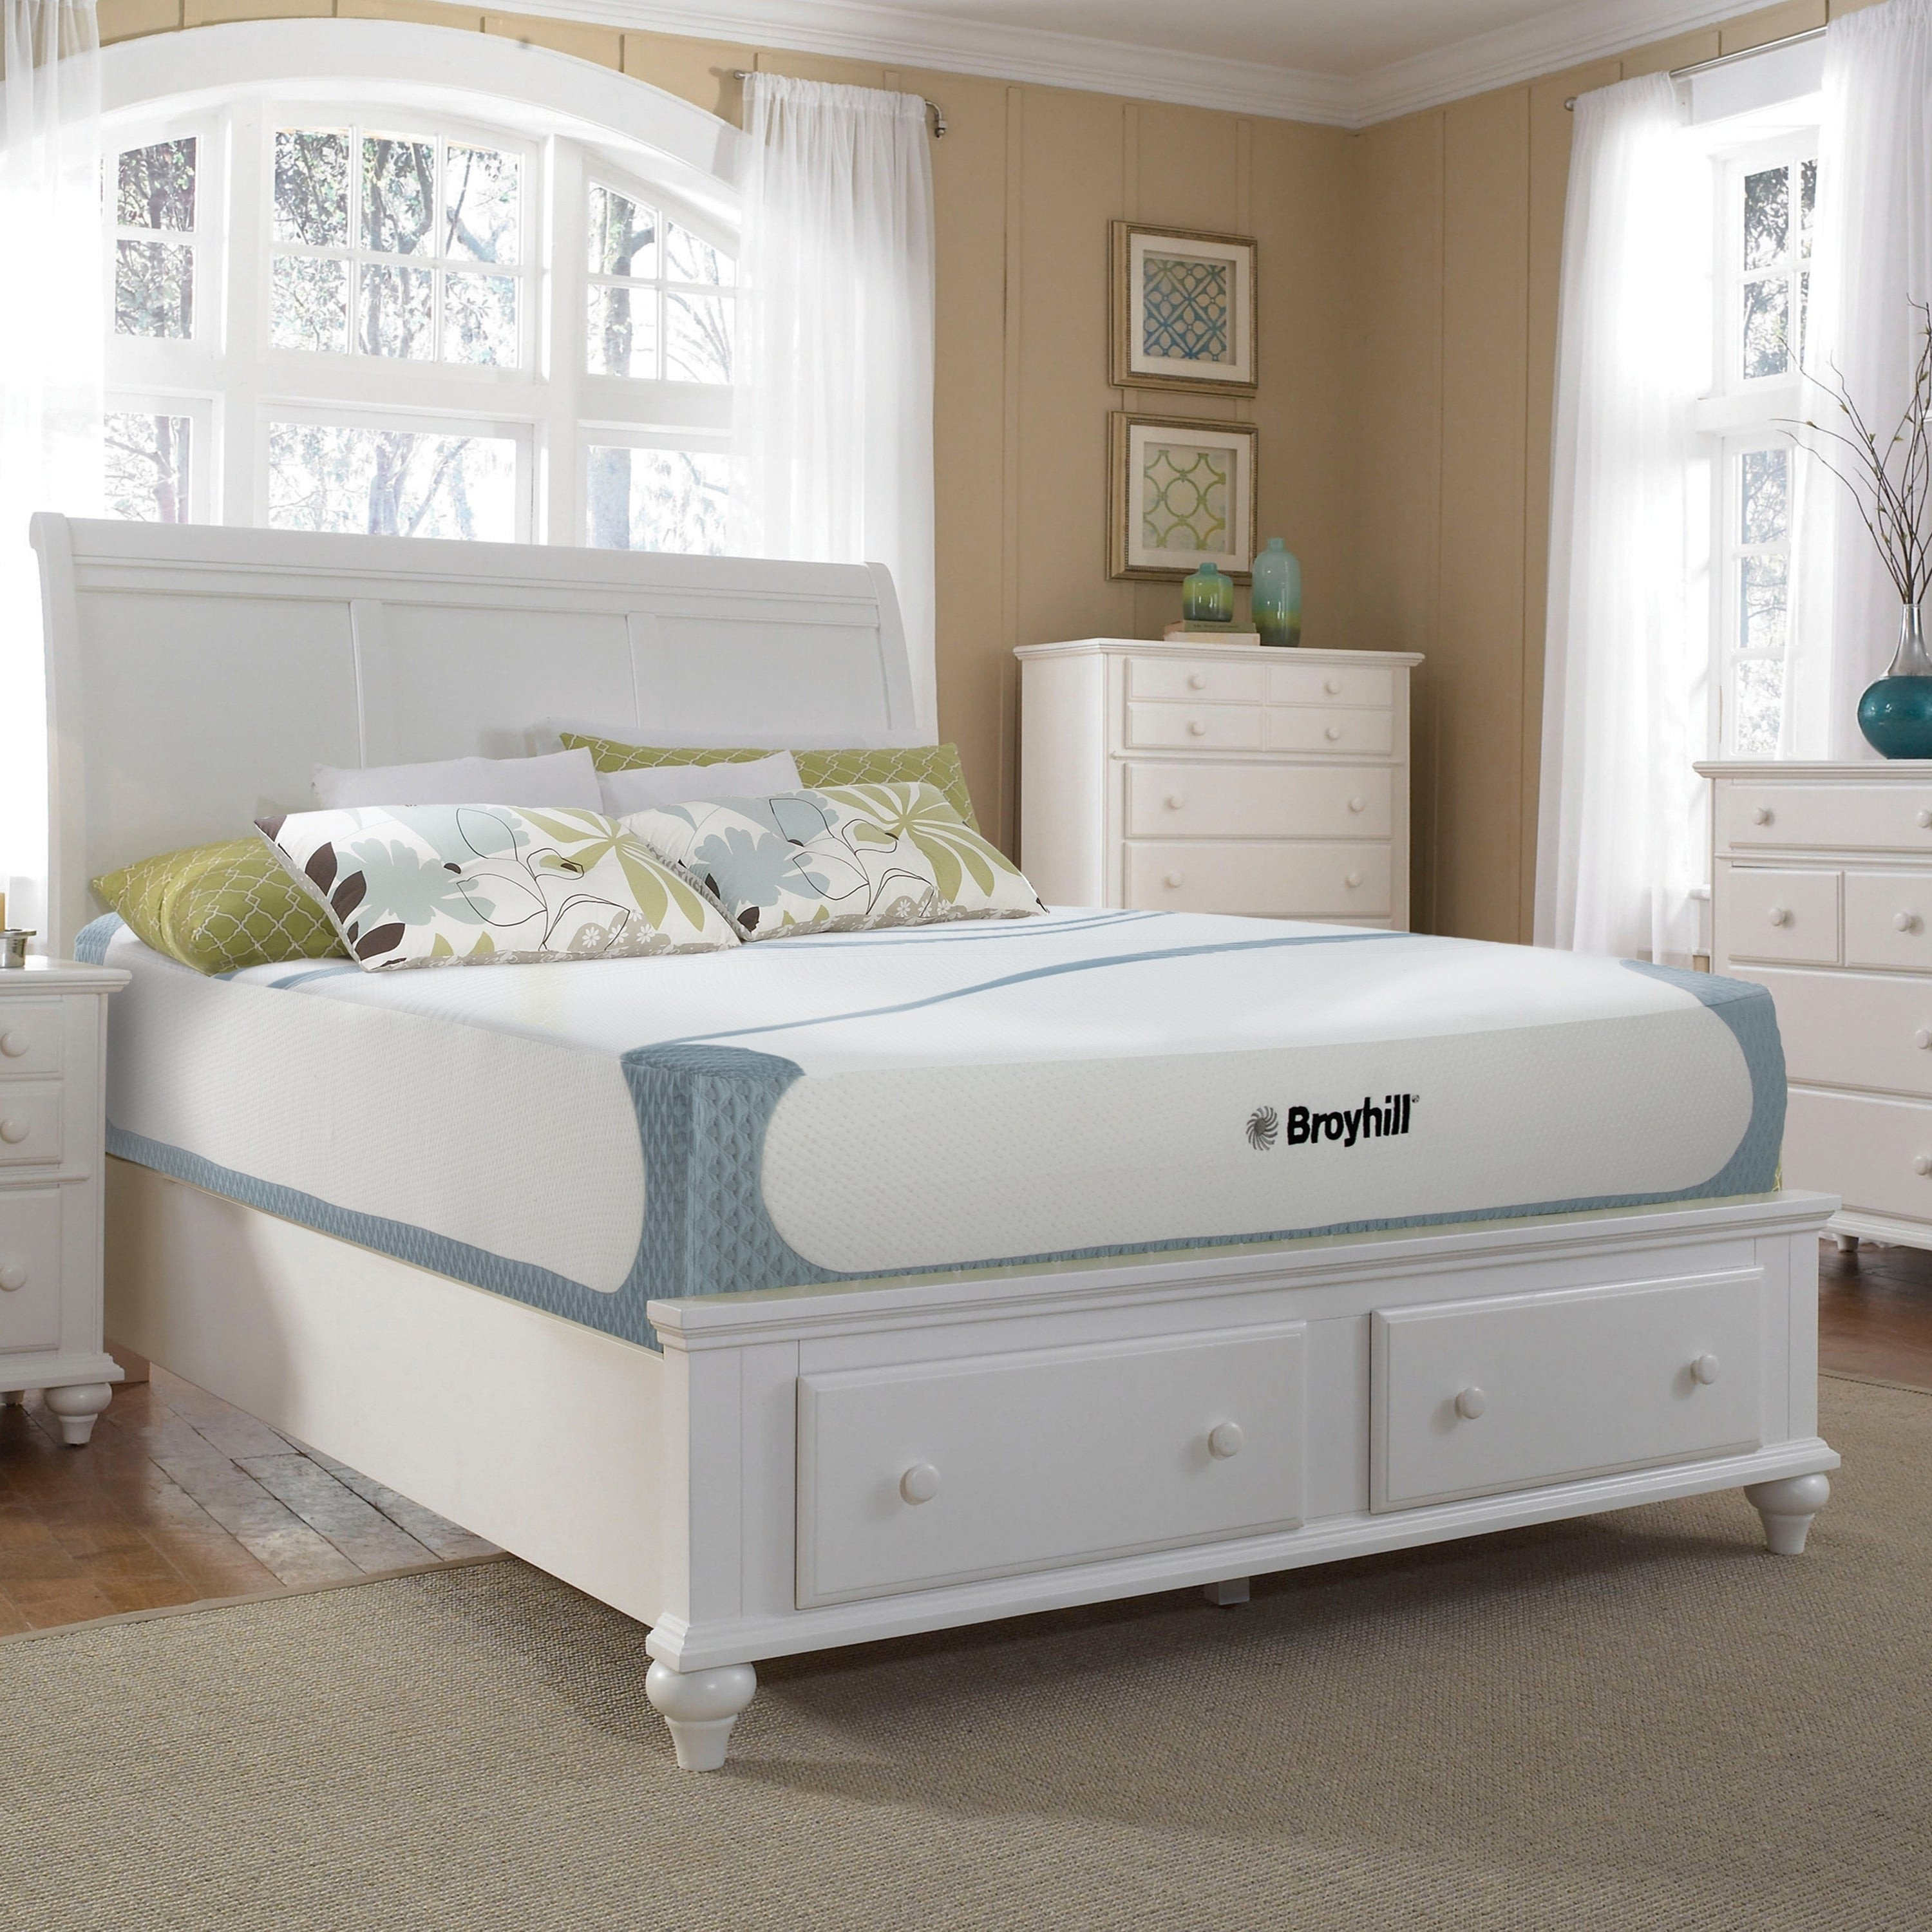 Broyhill King Bedroom Set Fresh Buy Broyhill Mattresses Sale Line at Overstock